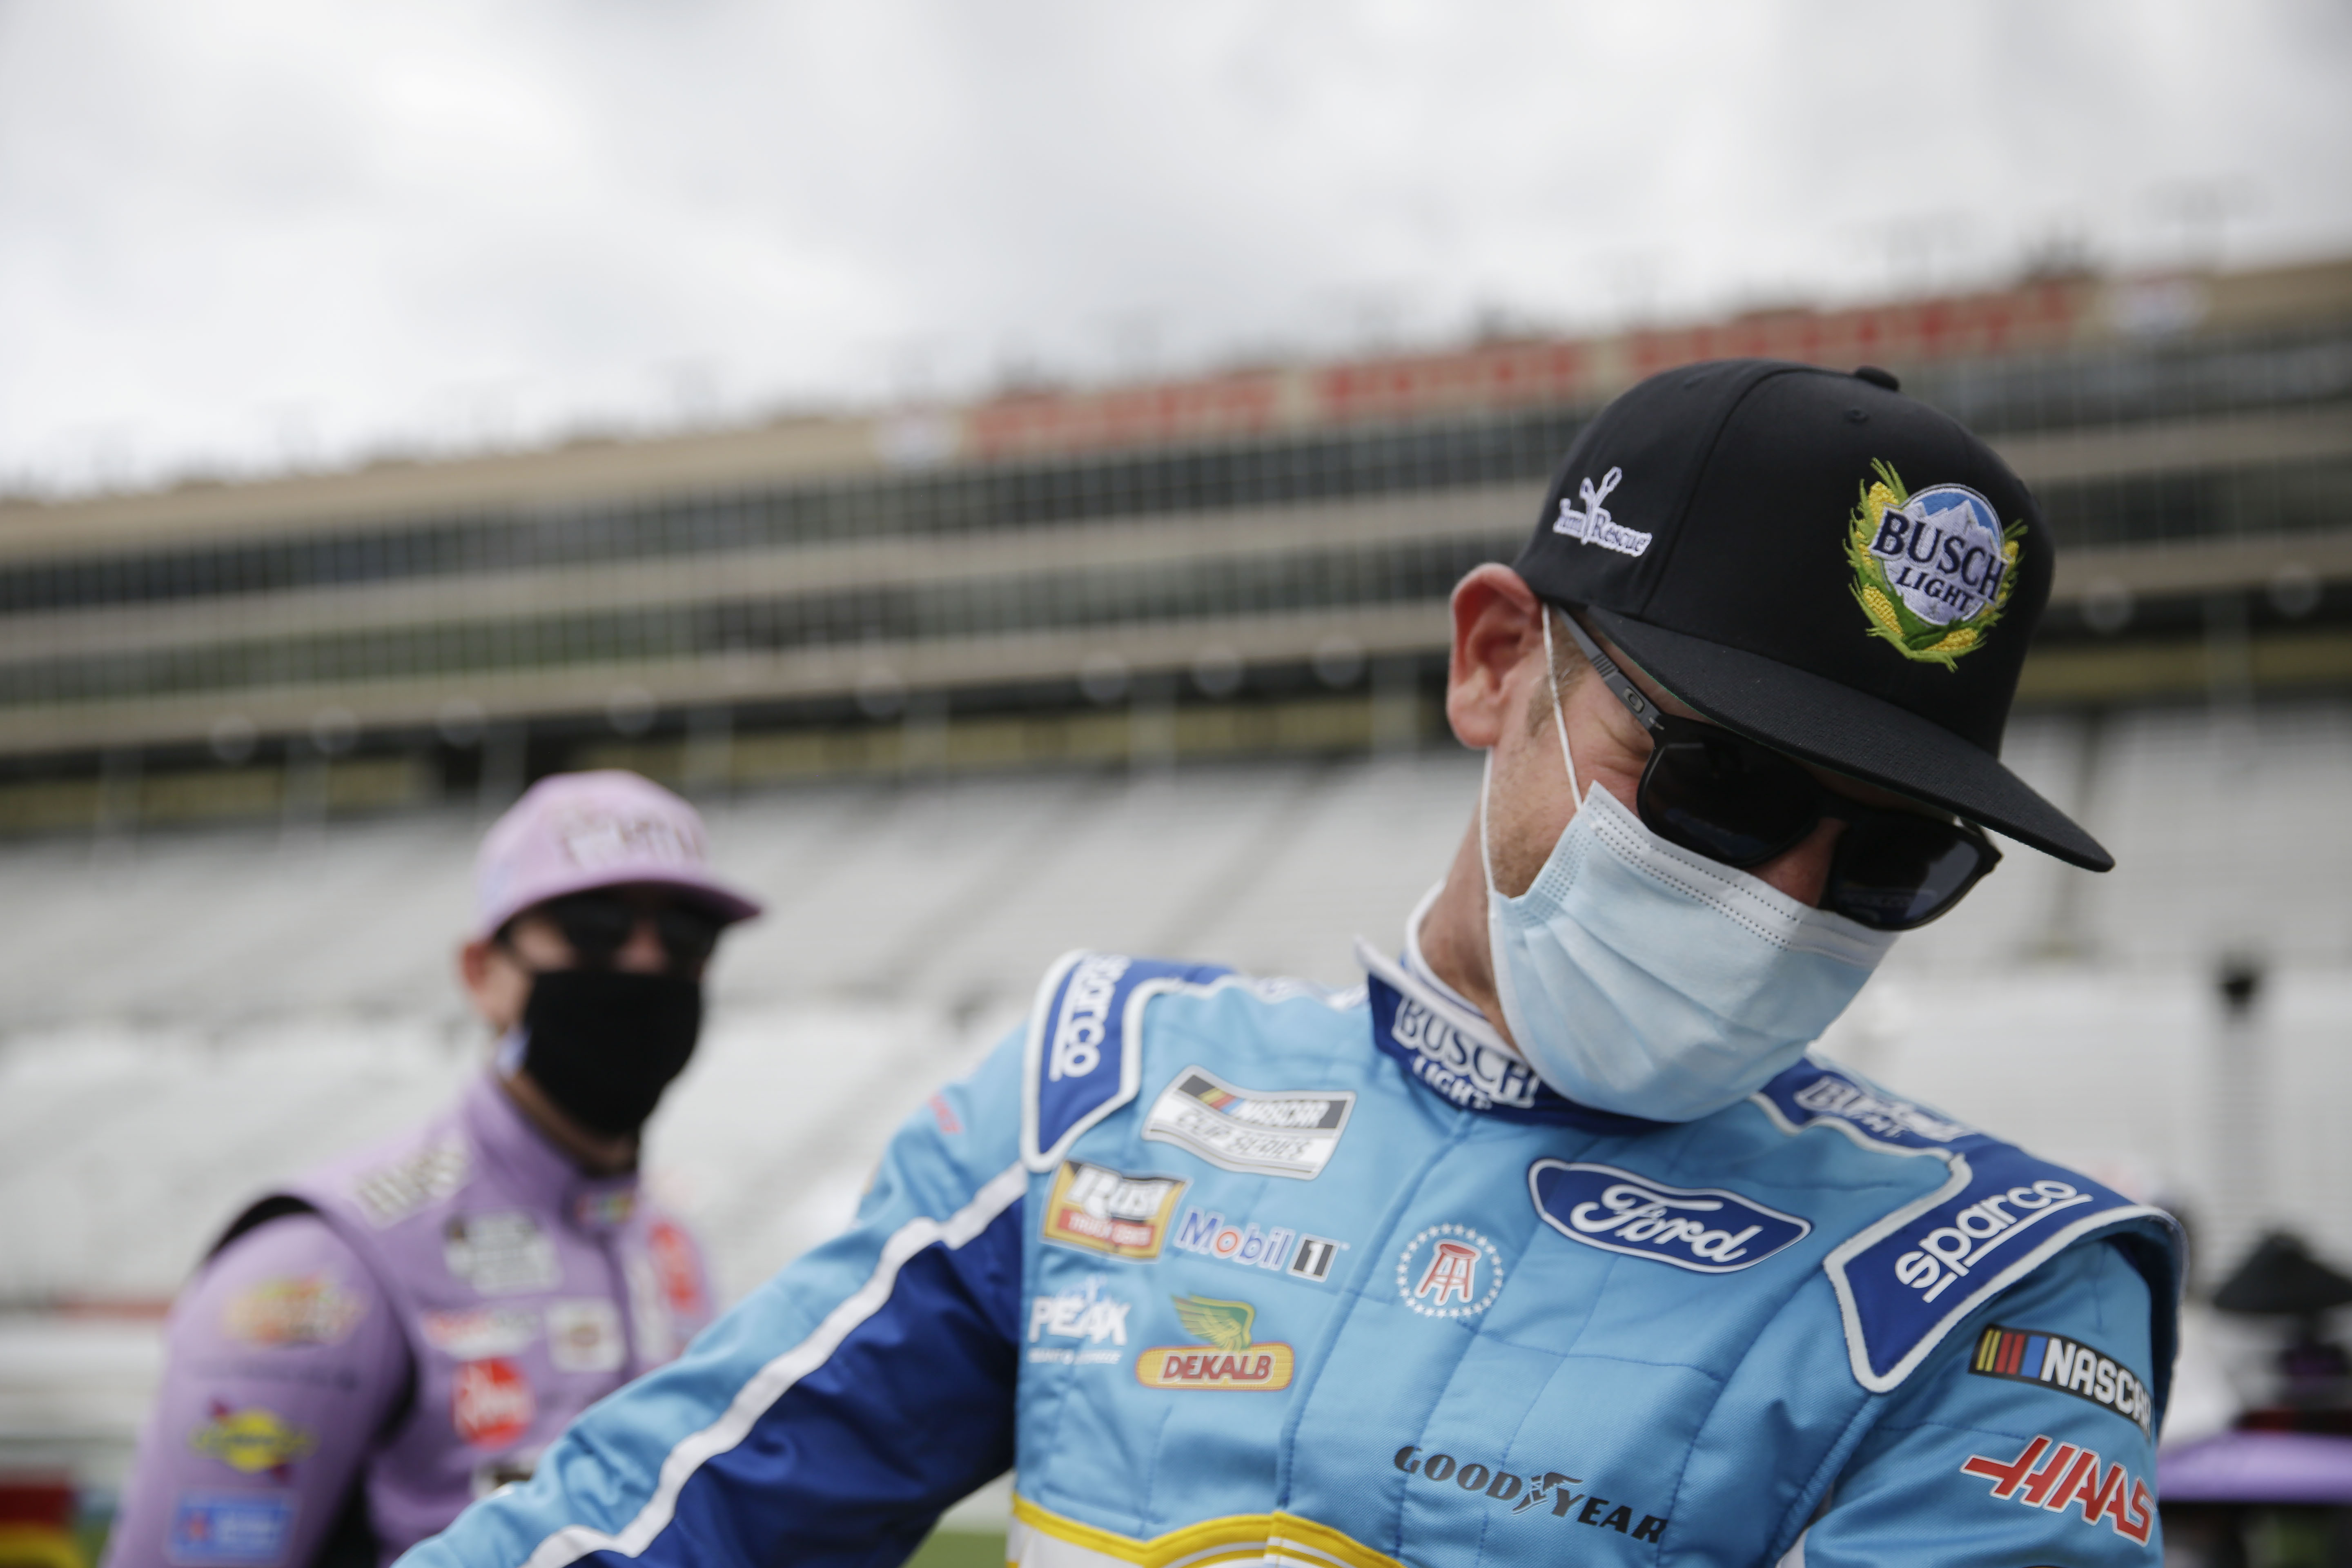 Harvick Cherishes Atlanta Win Looks To Help Off The Track Wate 6 On Your Side Call an ambulance call an ambulance but not for me gif. copyright 2020 the associated press all rights reserved